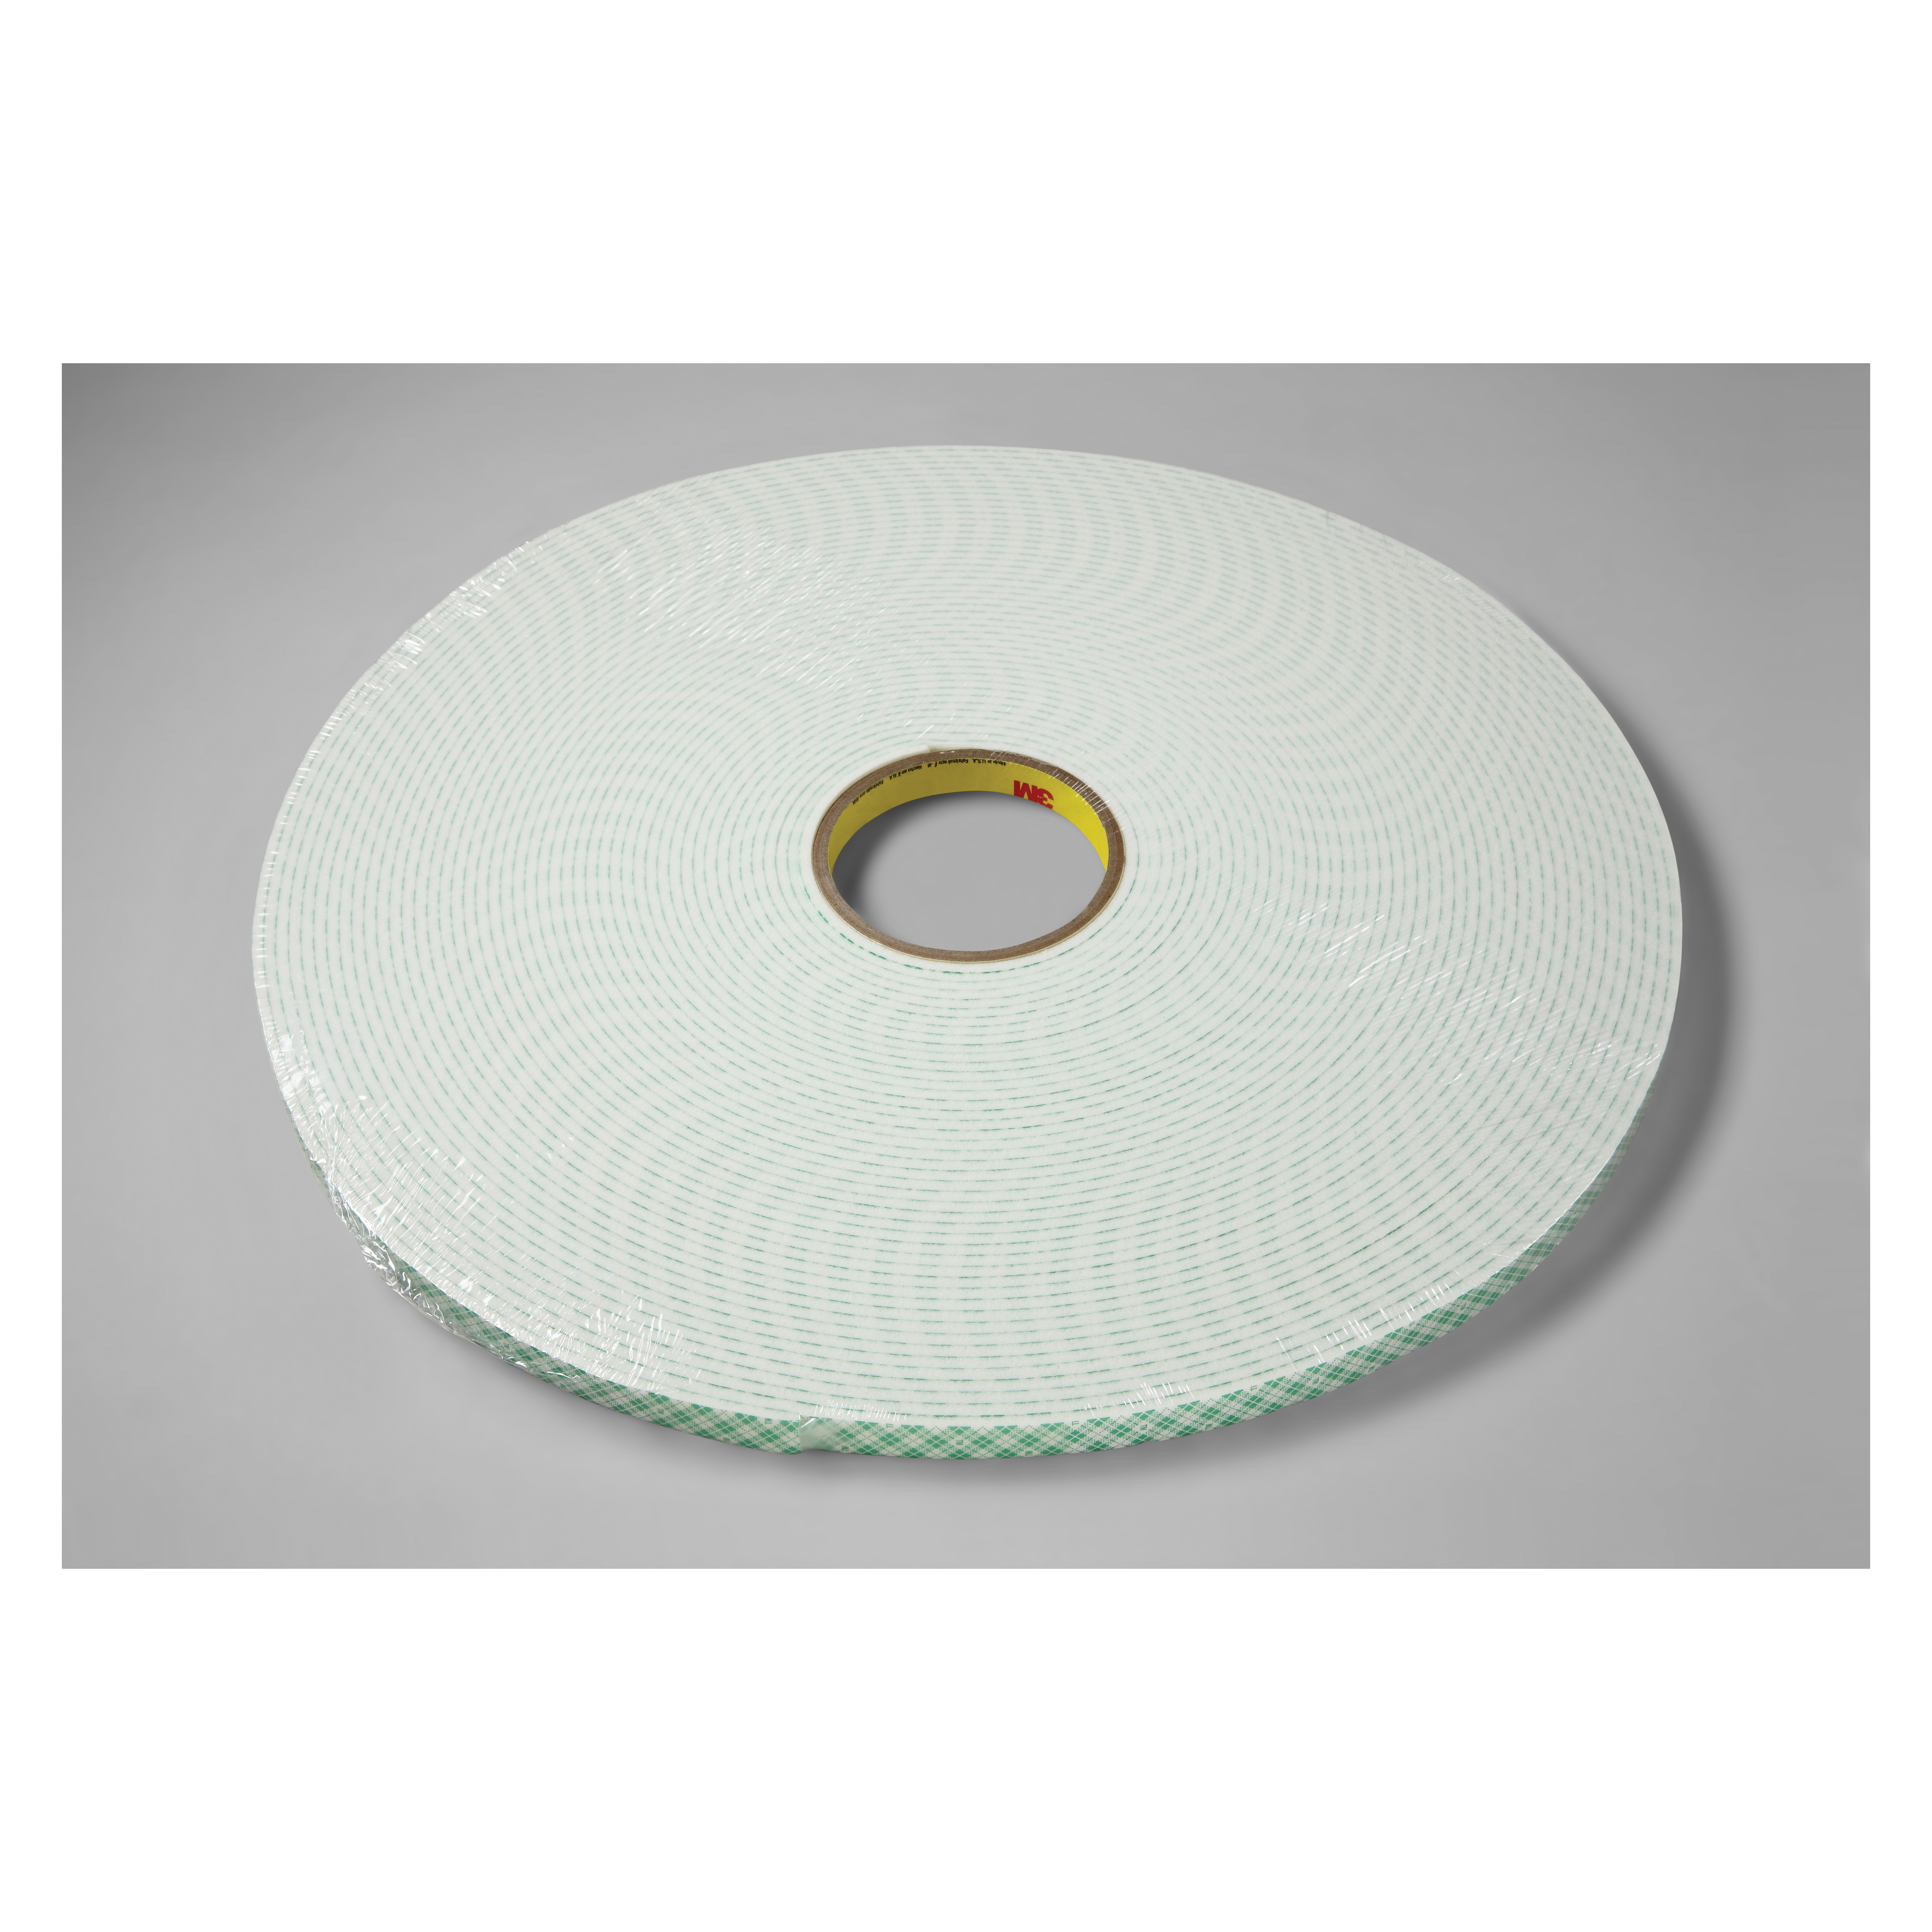 3M™ 021200-03382 Double Coated Tape, 36 yd L x 1/4 in W, 125 mil THK, Acrylic Adhesive, Urethane Foam Backing, Off-White